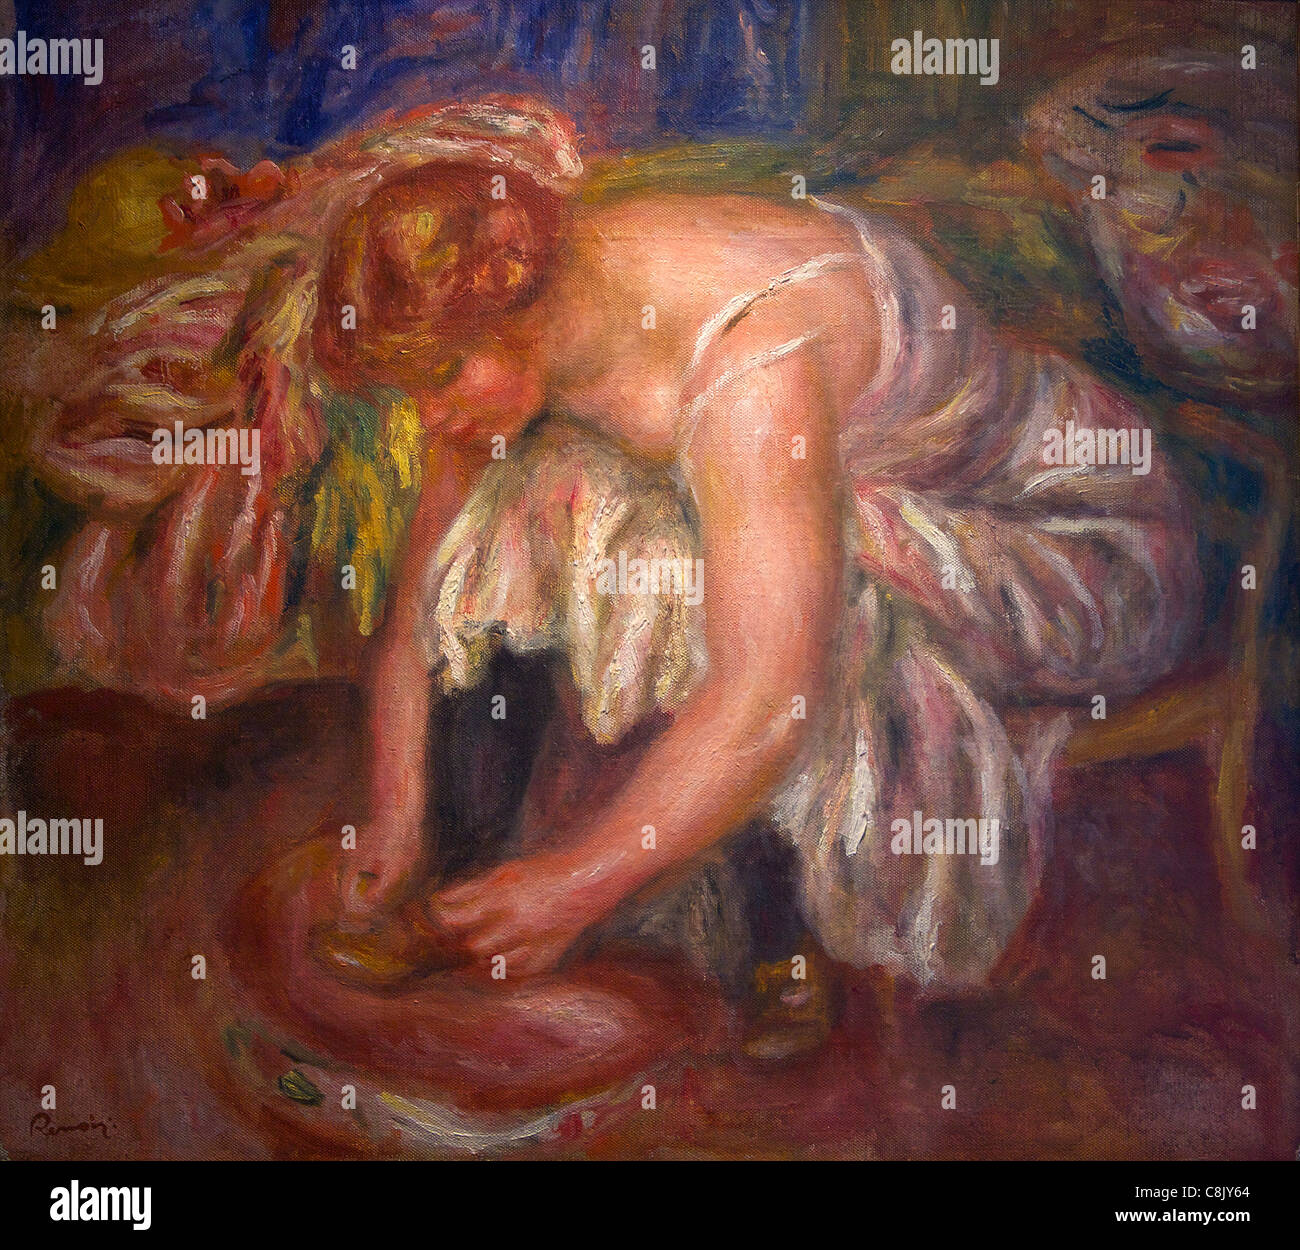 Woman tying her Shoes, by Pierre-Auguste Renoir, 1918, Courtauld Institute Galleries, Somerset House, London, England, - Stock Image